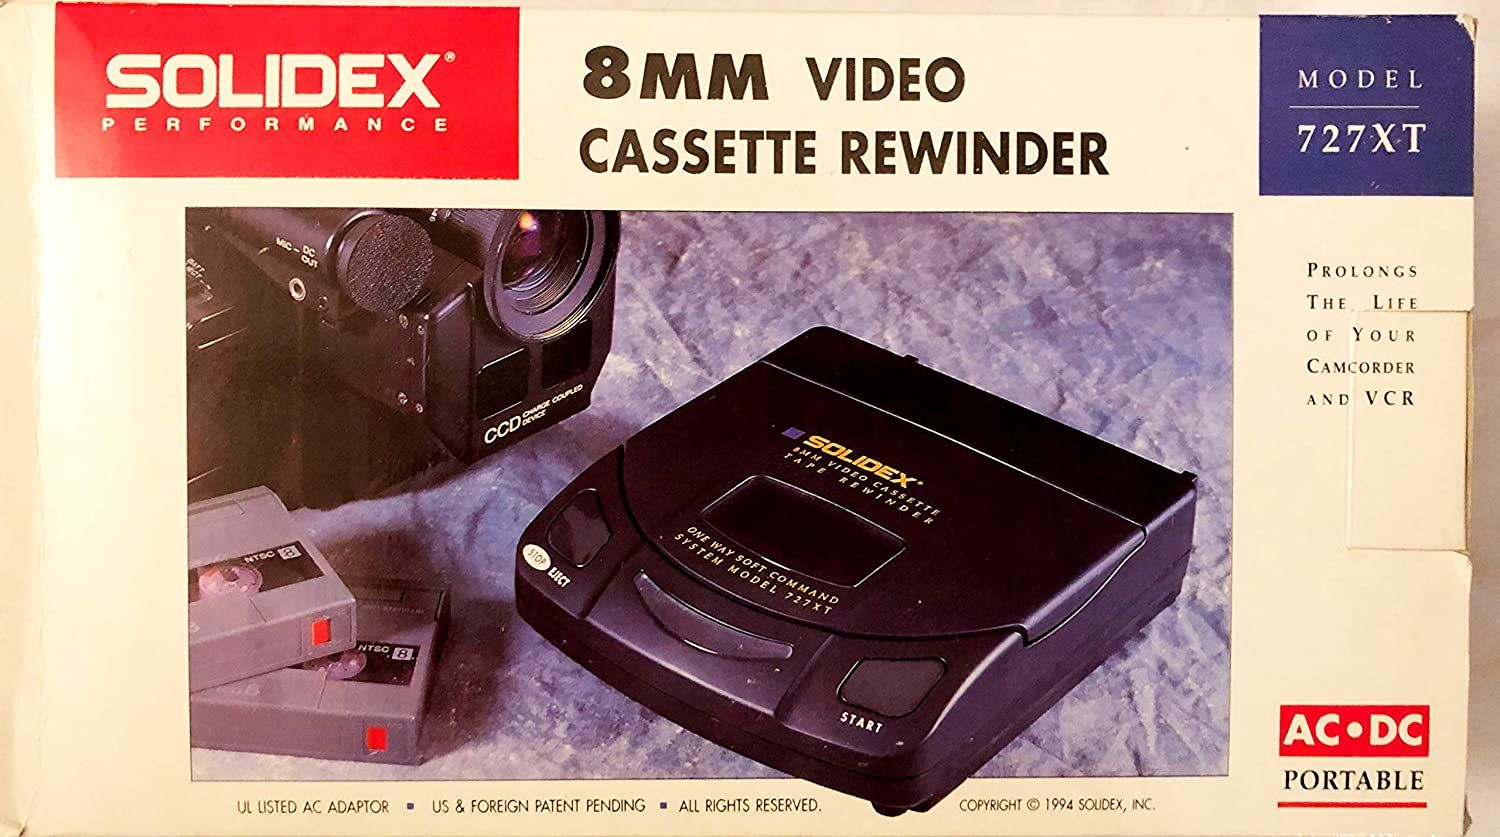 Solidex 727xt Cassette Rewinder Black Home Audio And Theater Amazon Affiliate Link Click Image For Detail Amazon In 2020 Cassette Audio This Or That Questions